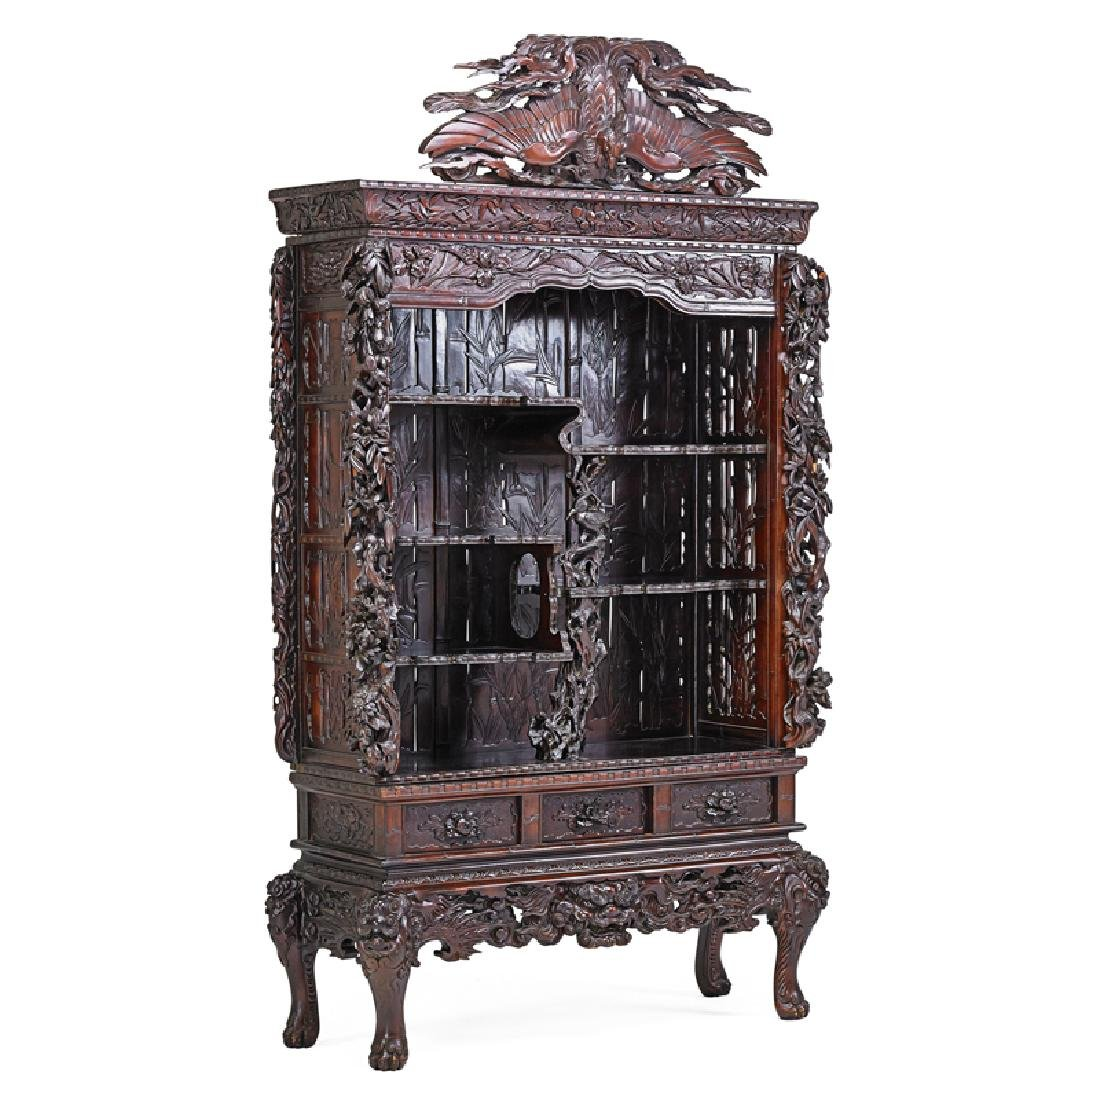 JAPONISM CABINET ON STAND